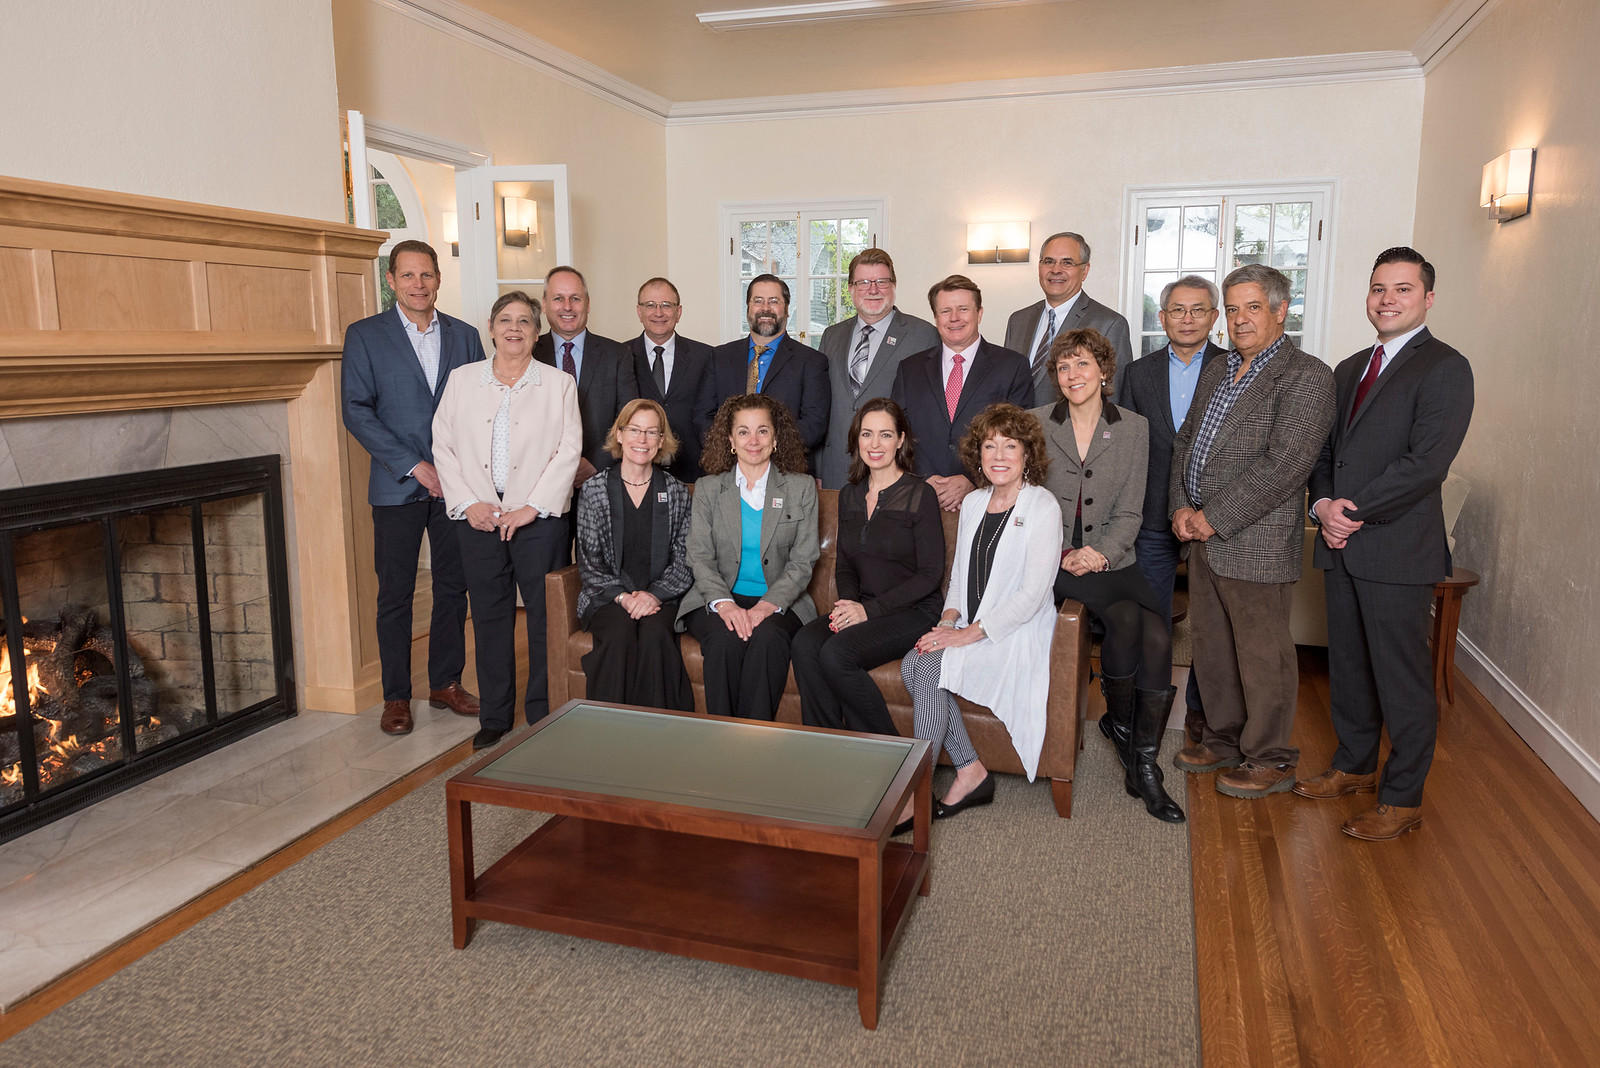 Distinguished Alumni and Deans Stephen C. Goodall, Judith Hennessey, Paul Lambros, Eddie Vela, David Hassenzahl, Robert Knight, Michael Finney, John Unruh, Chuen Hsu, Jose Manuel Leal da Costa, Aaron Skaggs (standing, left to right) with Jenelle Ball, Rose Esposito-McCallen, J'Anna Jacoby, Candy Solari and Angela Trethewey (sitting, left to right) take a group photo in the Warrens Reception Center on Friday, March 24, 2017 in Chico, Calif. (Jason Halley/University Photographer)